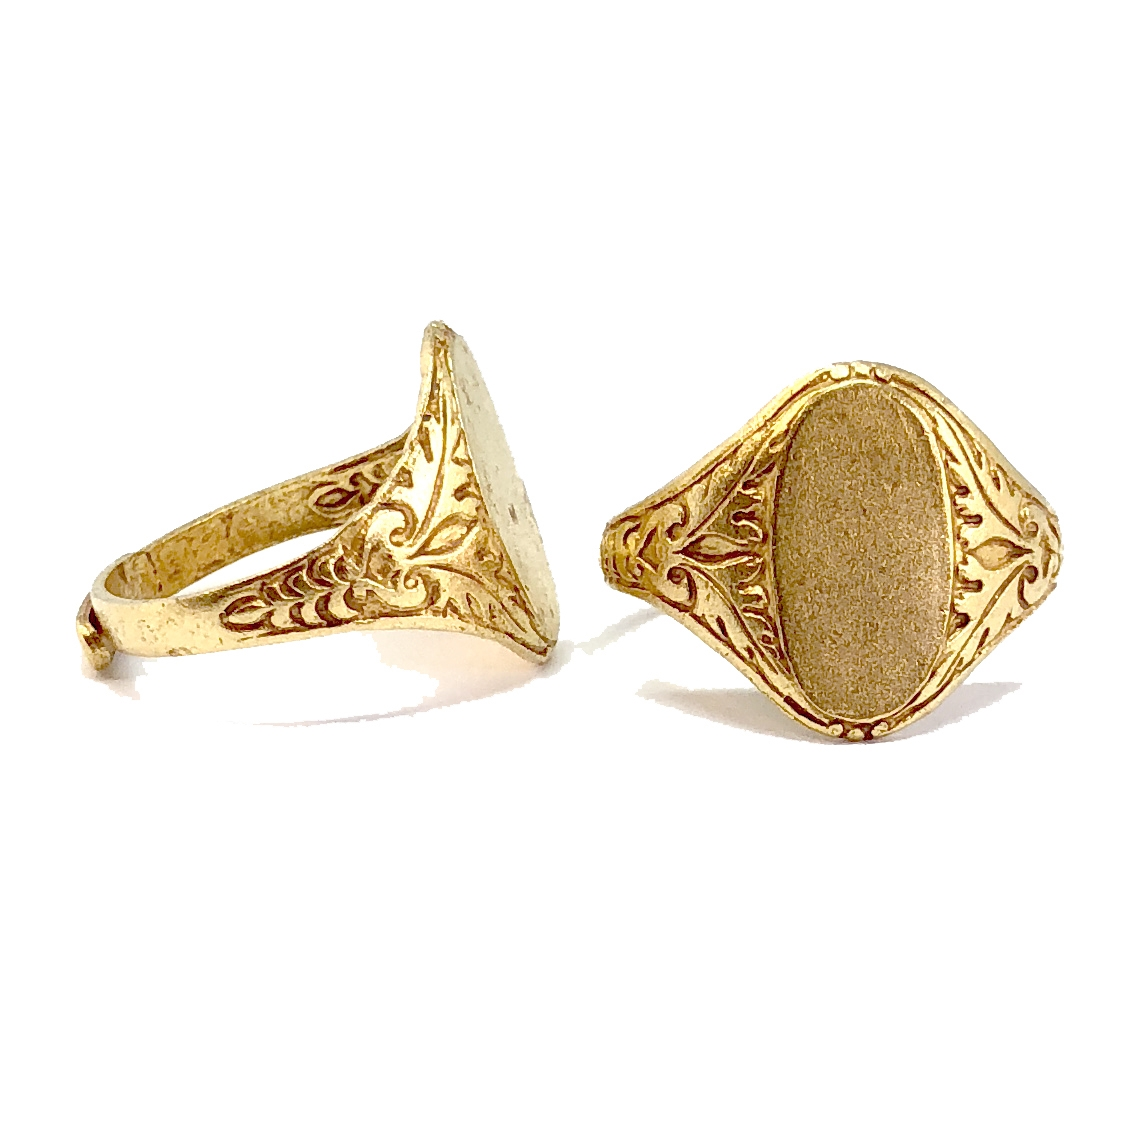 brass jewelry rings, signature rings, 05784, classic gold, antique gold, black antiquing, vintage jewellery supplies, jewelry making supplies, US made jewelry supplies, nickel free jewelry supplies, jewelry findings